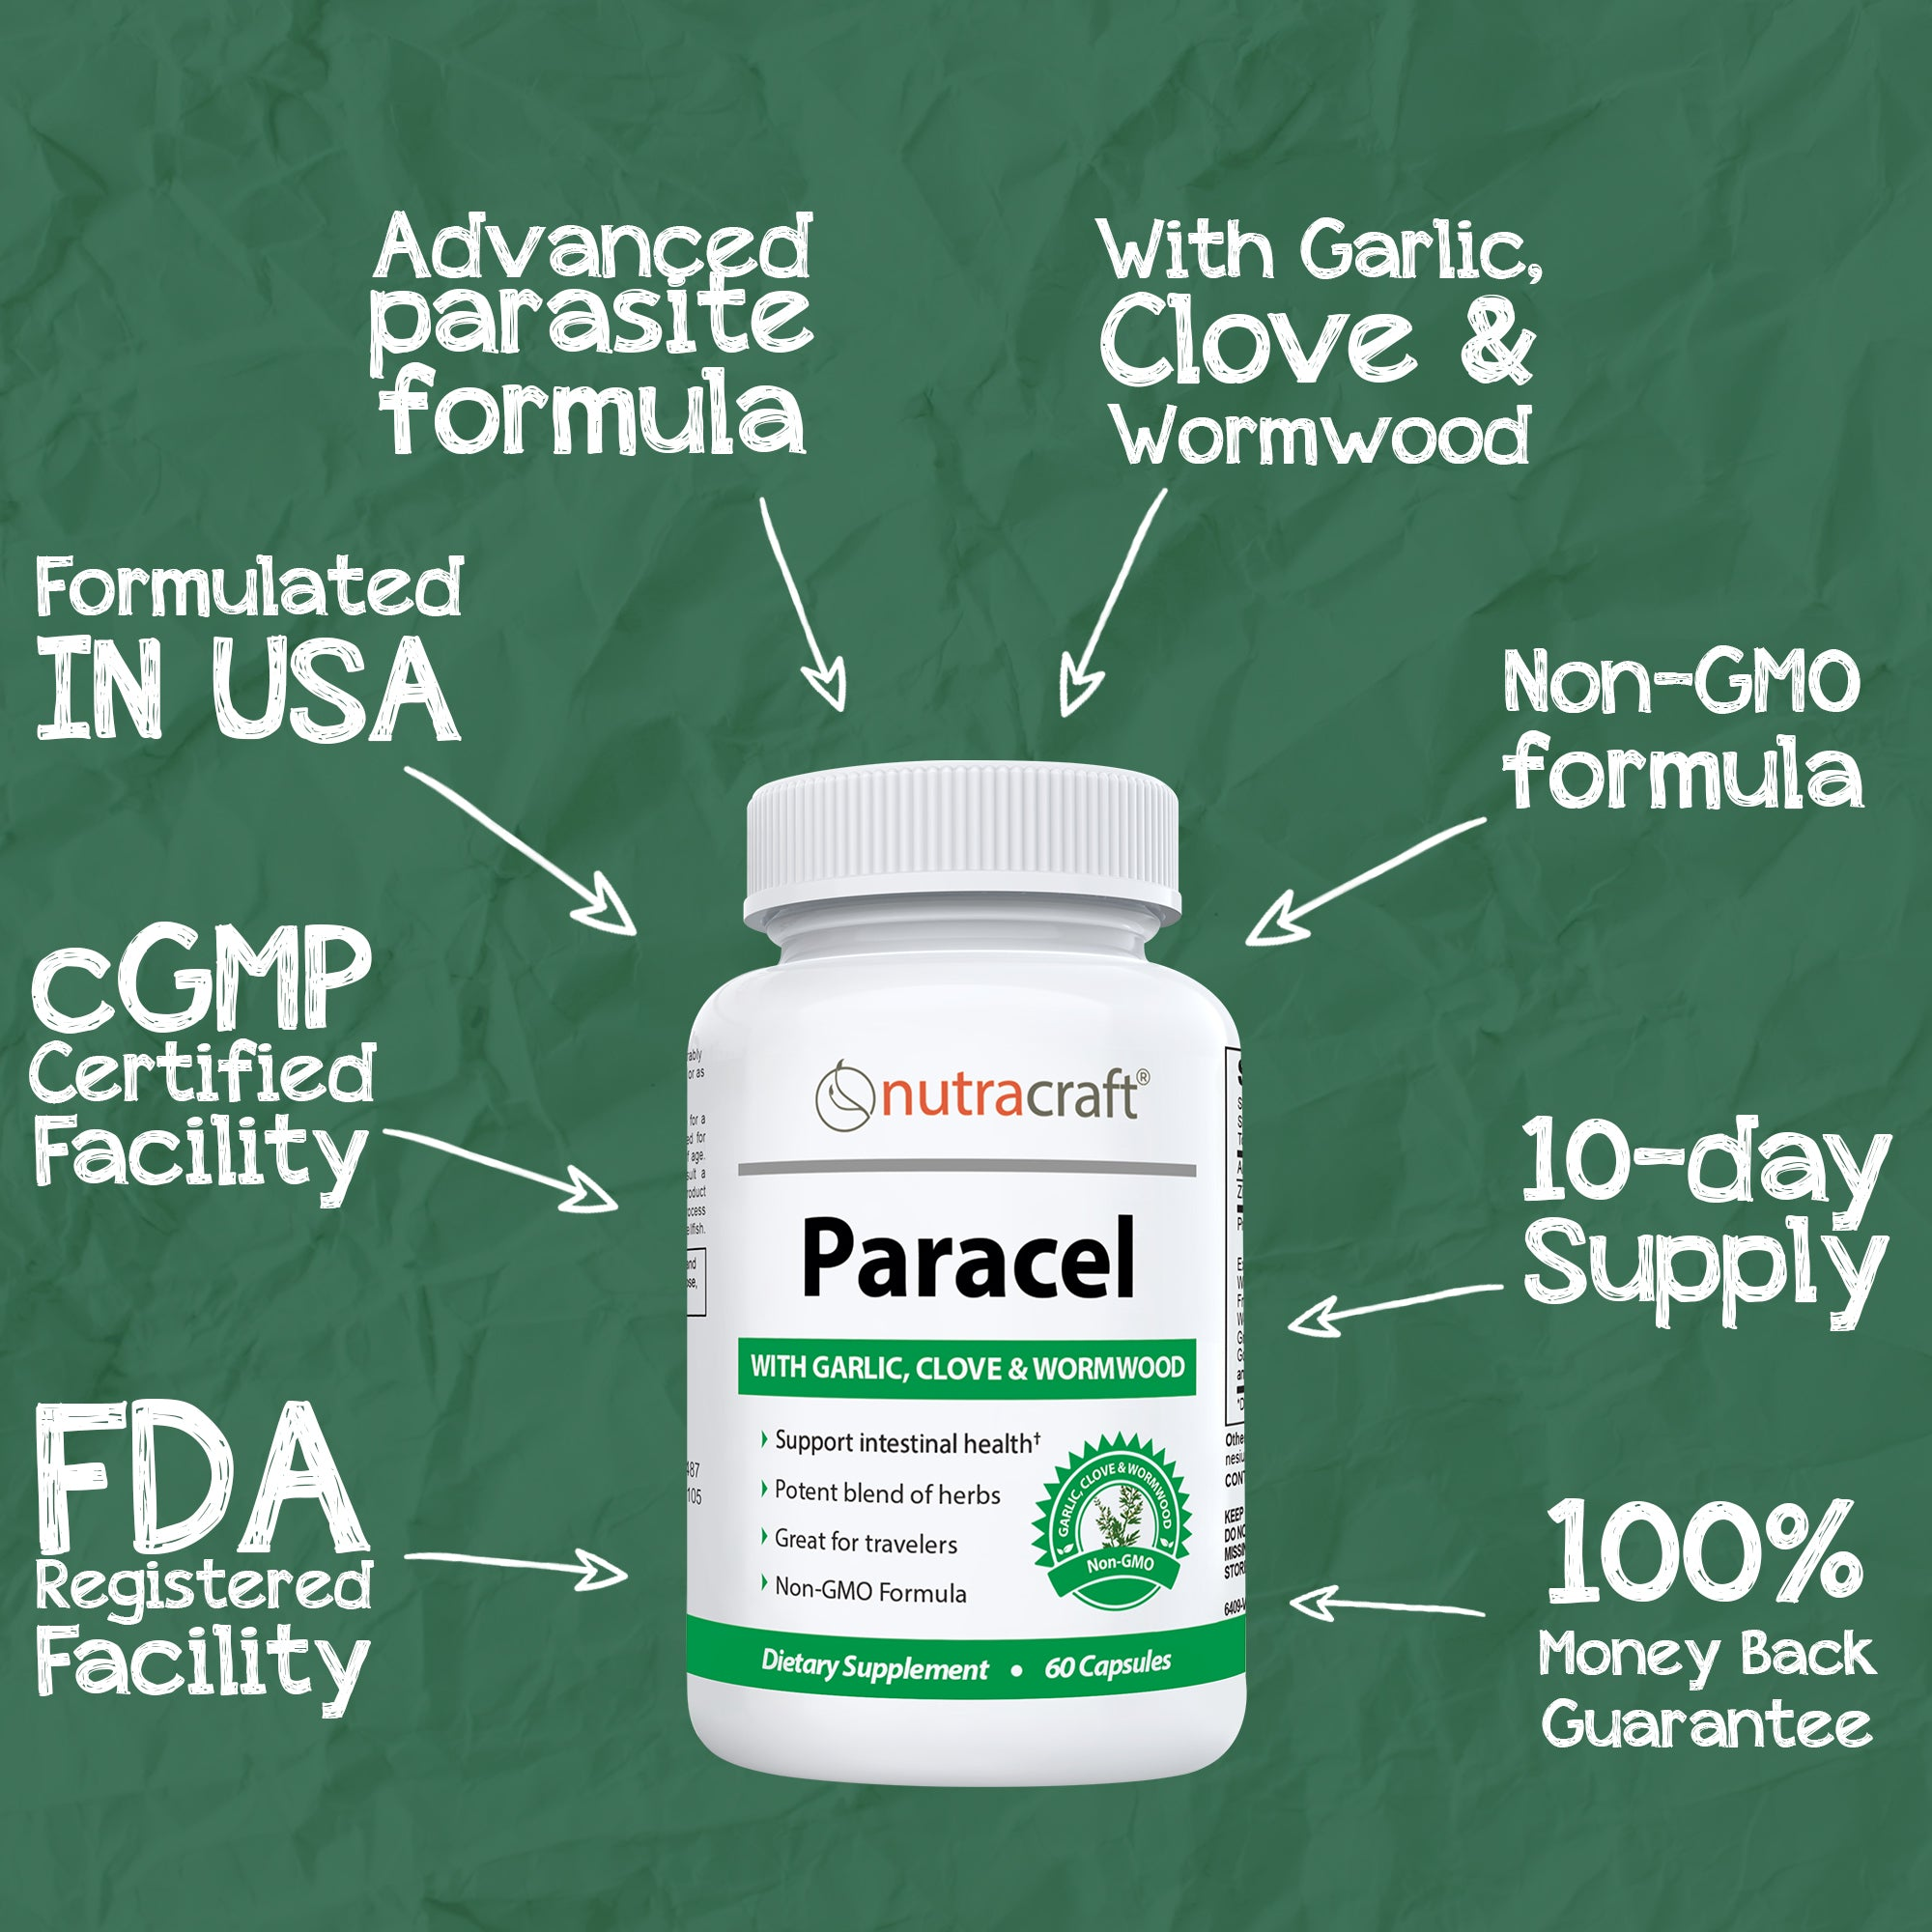 nutracraft-paracel-seals